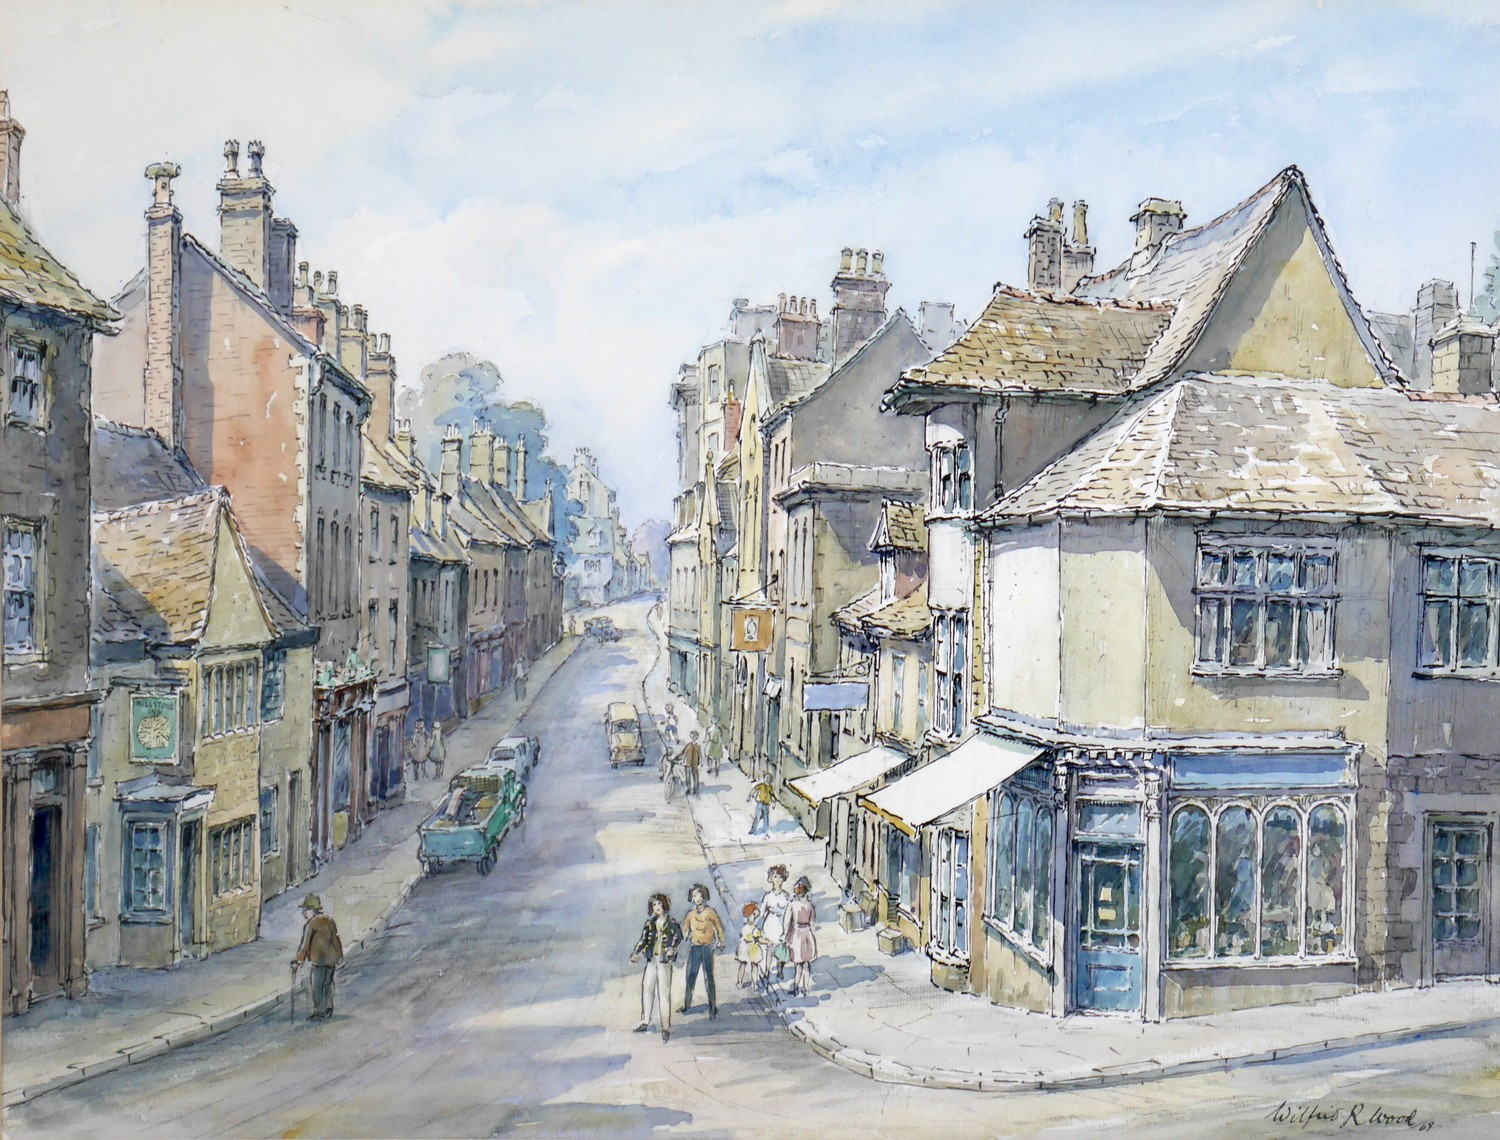 Wilfrid Rene Wood (British, 1888-1976): a view of Stamford, depicting ?All Saints Place? (No 48),